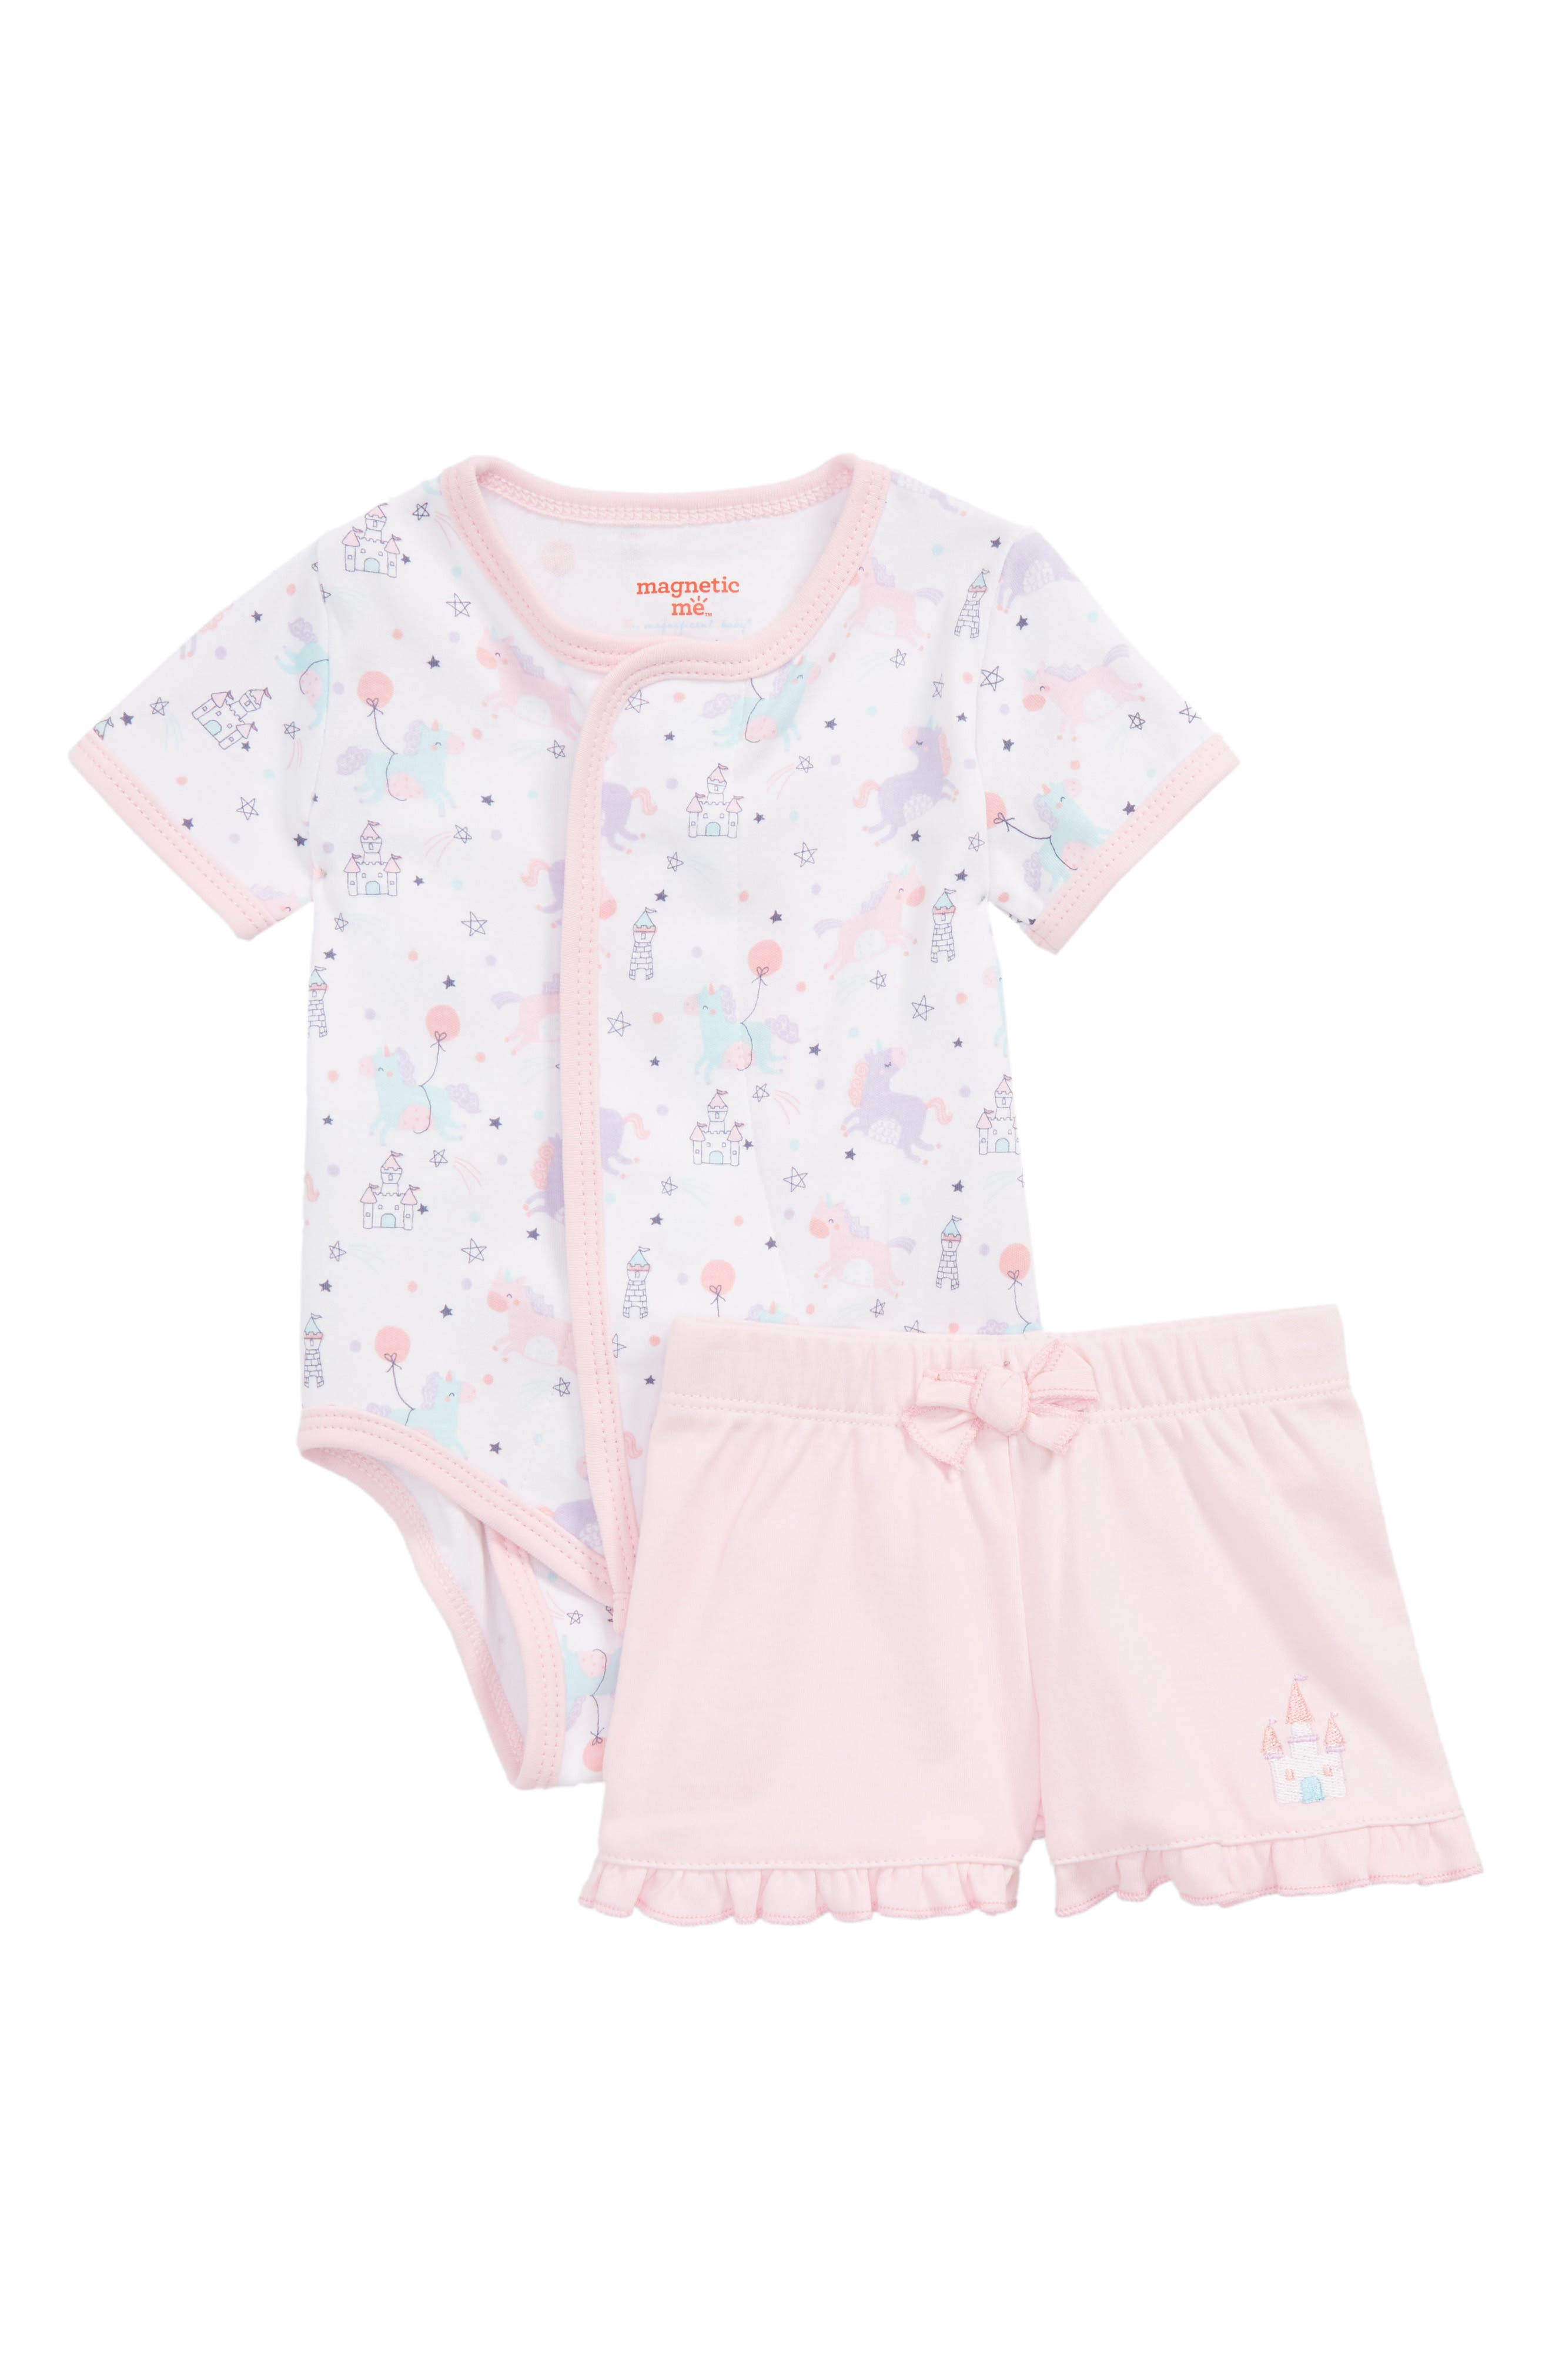 Once Upon a Time Bodysuit & Shorts Set,                         Main,                         color, Pink